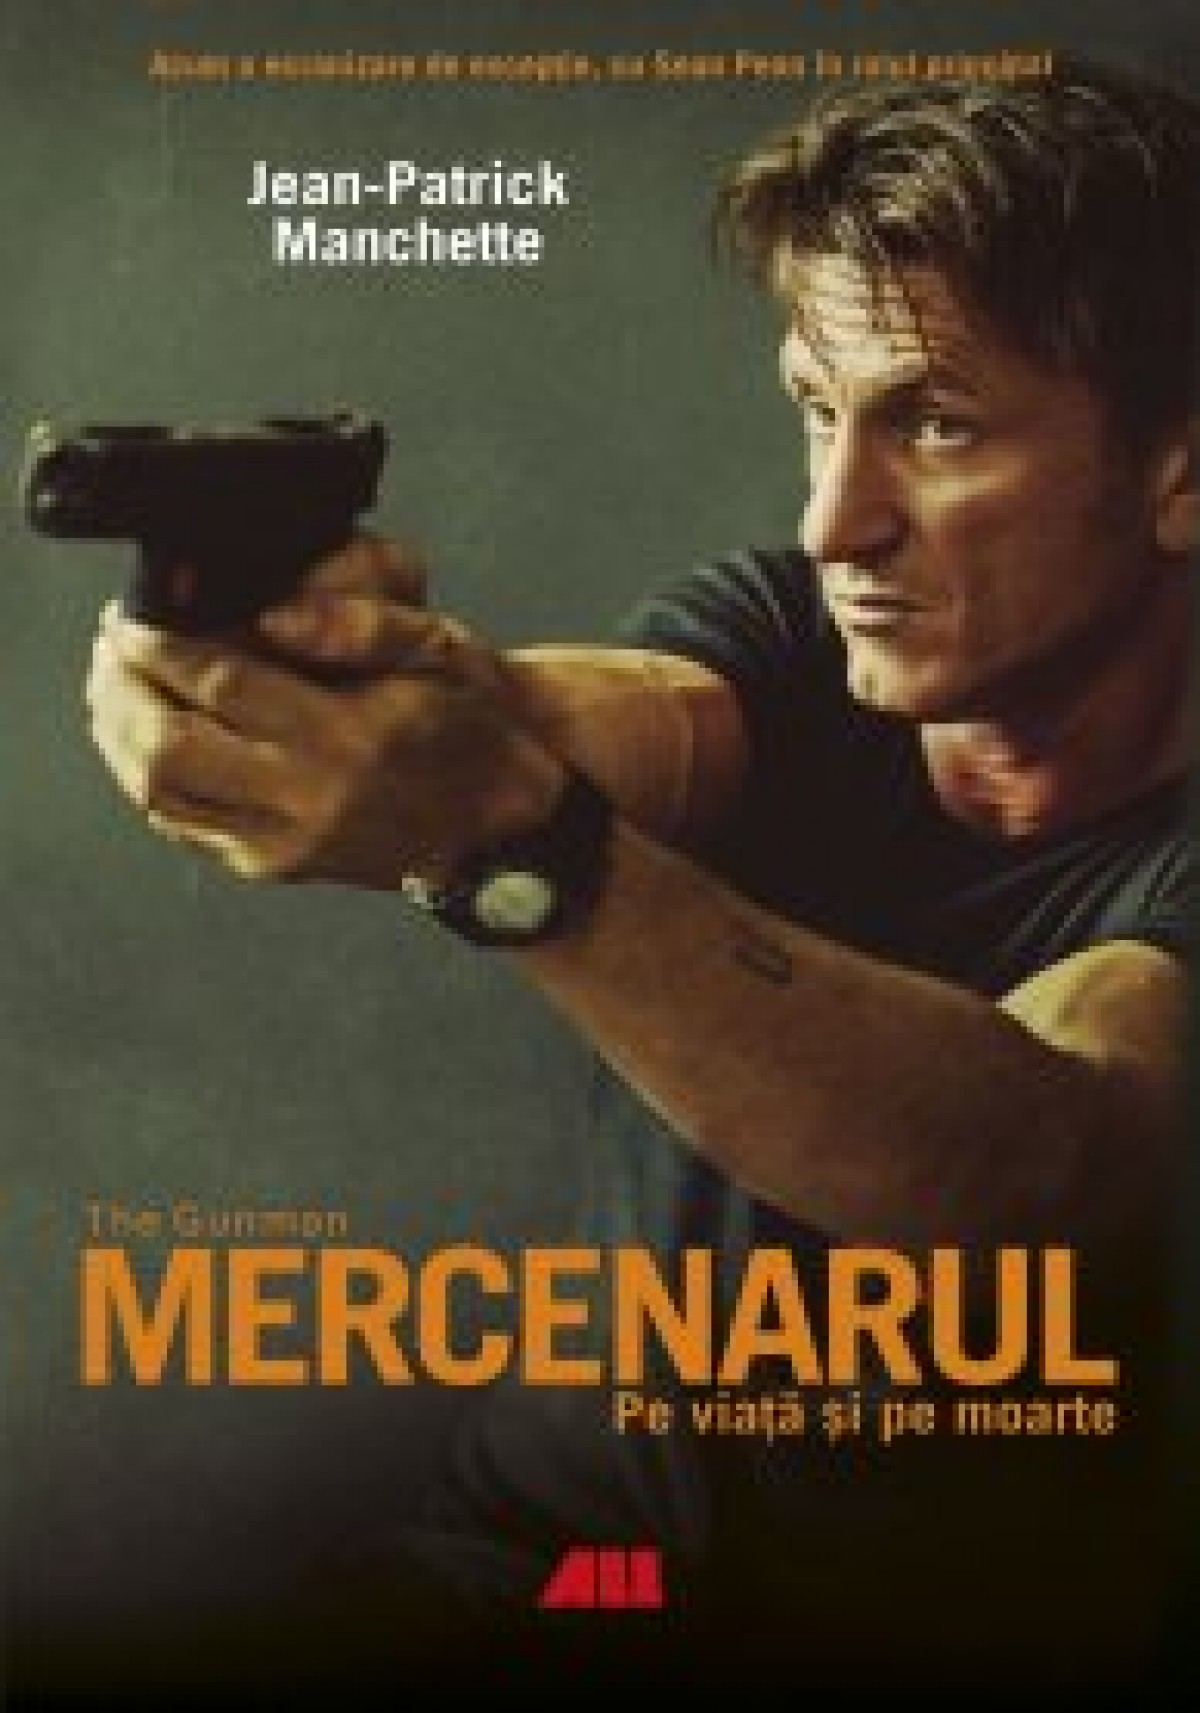 MERCENARUL (THE GUNMAN)